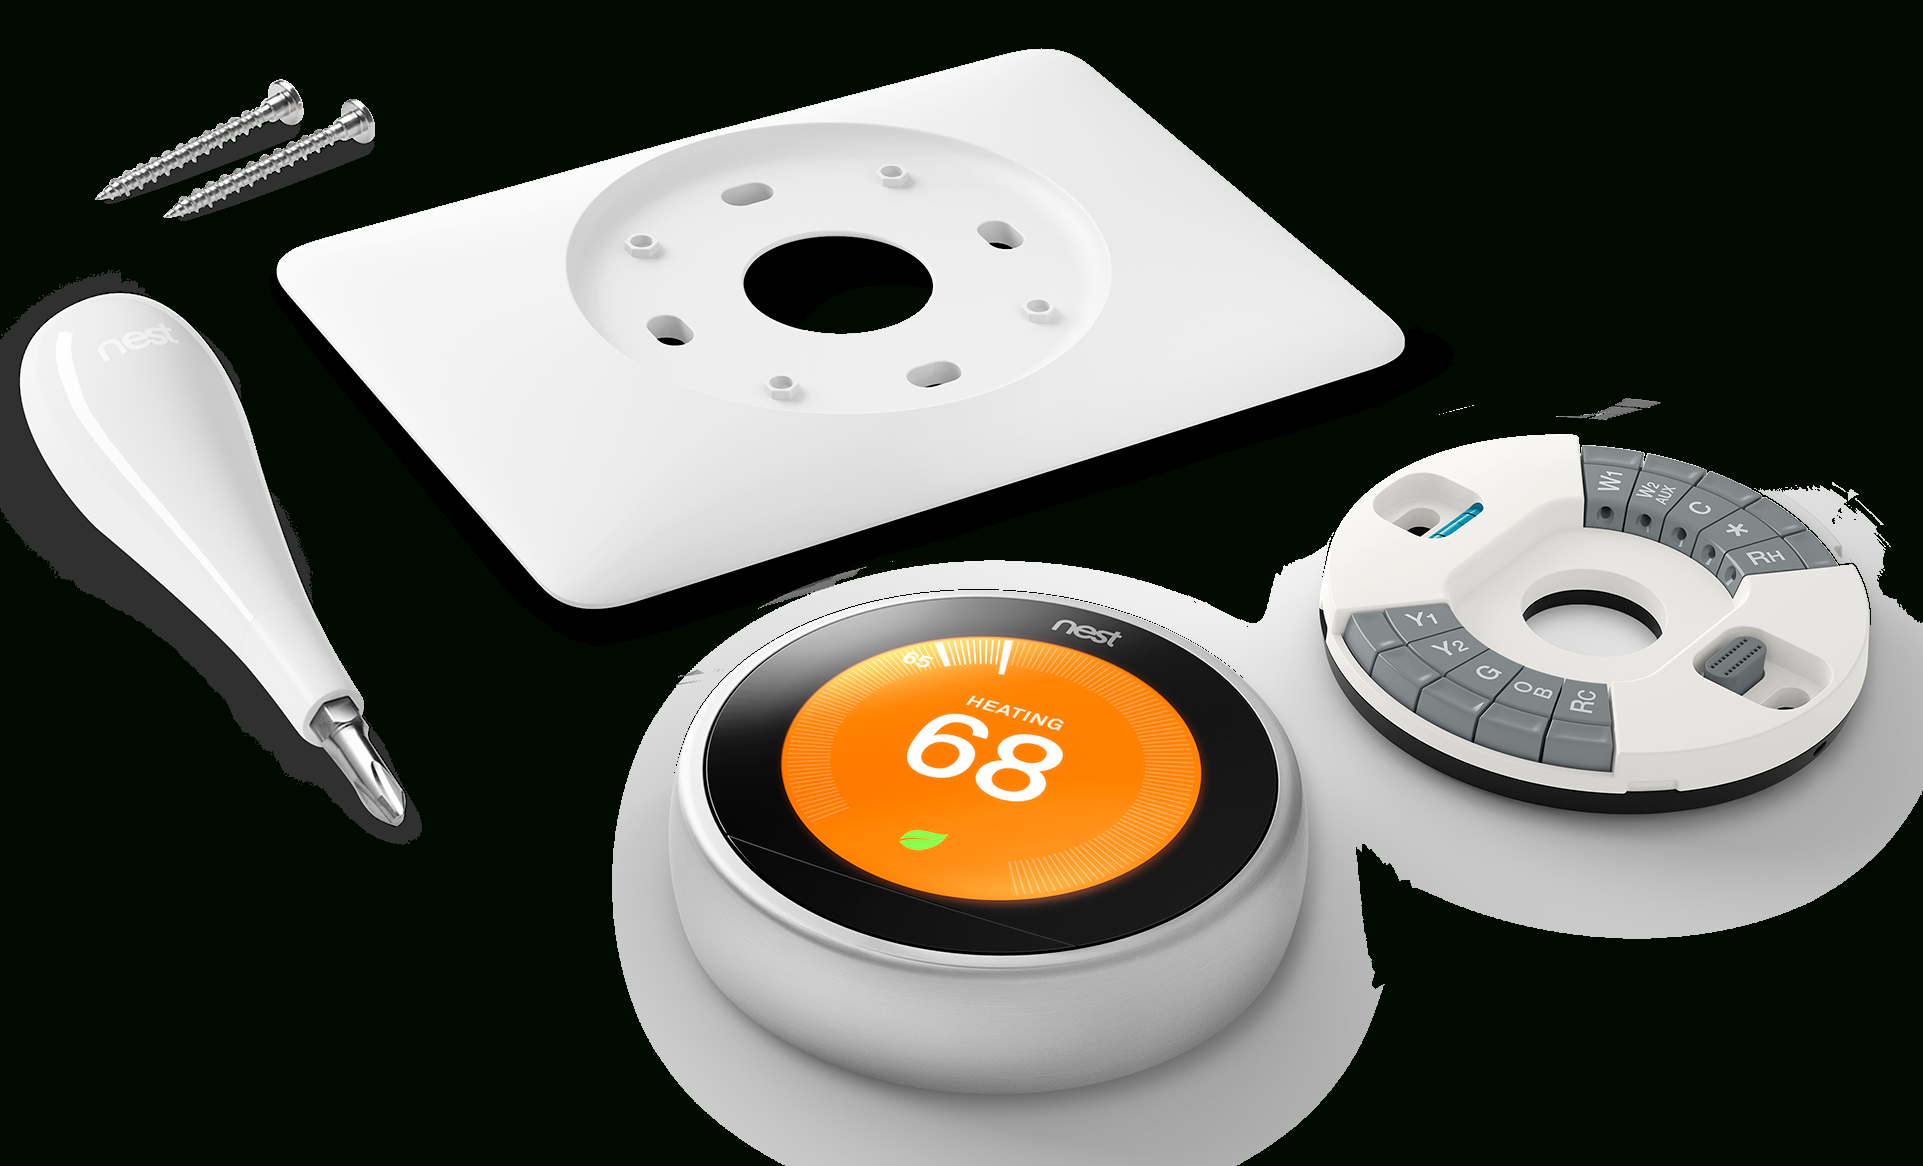 How To Install Your Nest Thermostat - Nest Thermostat Gen 3 Wiring Diagram